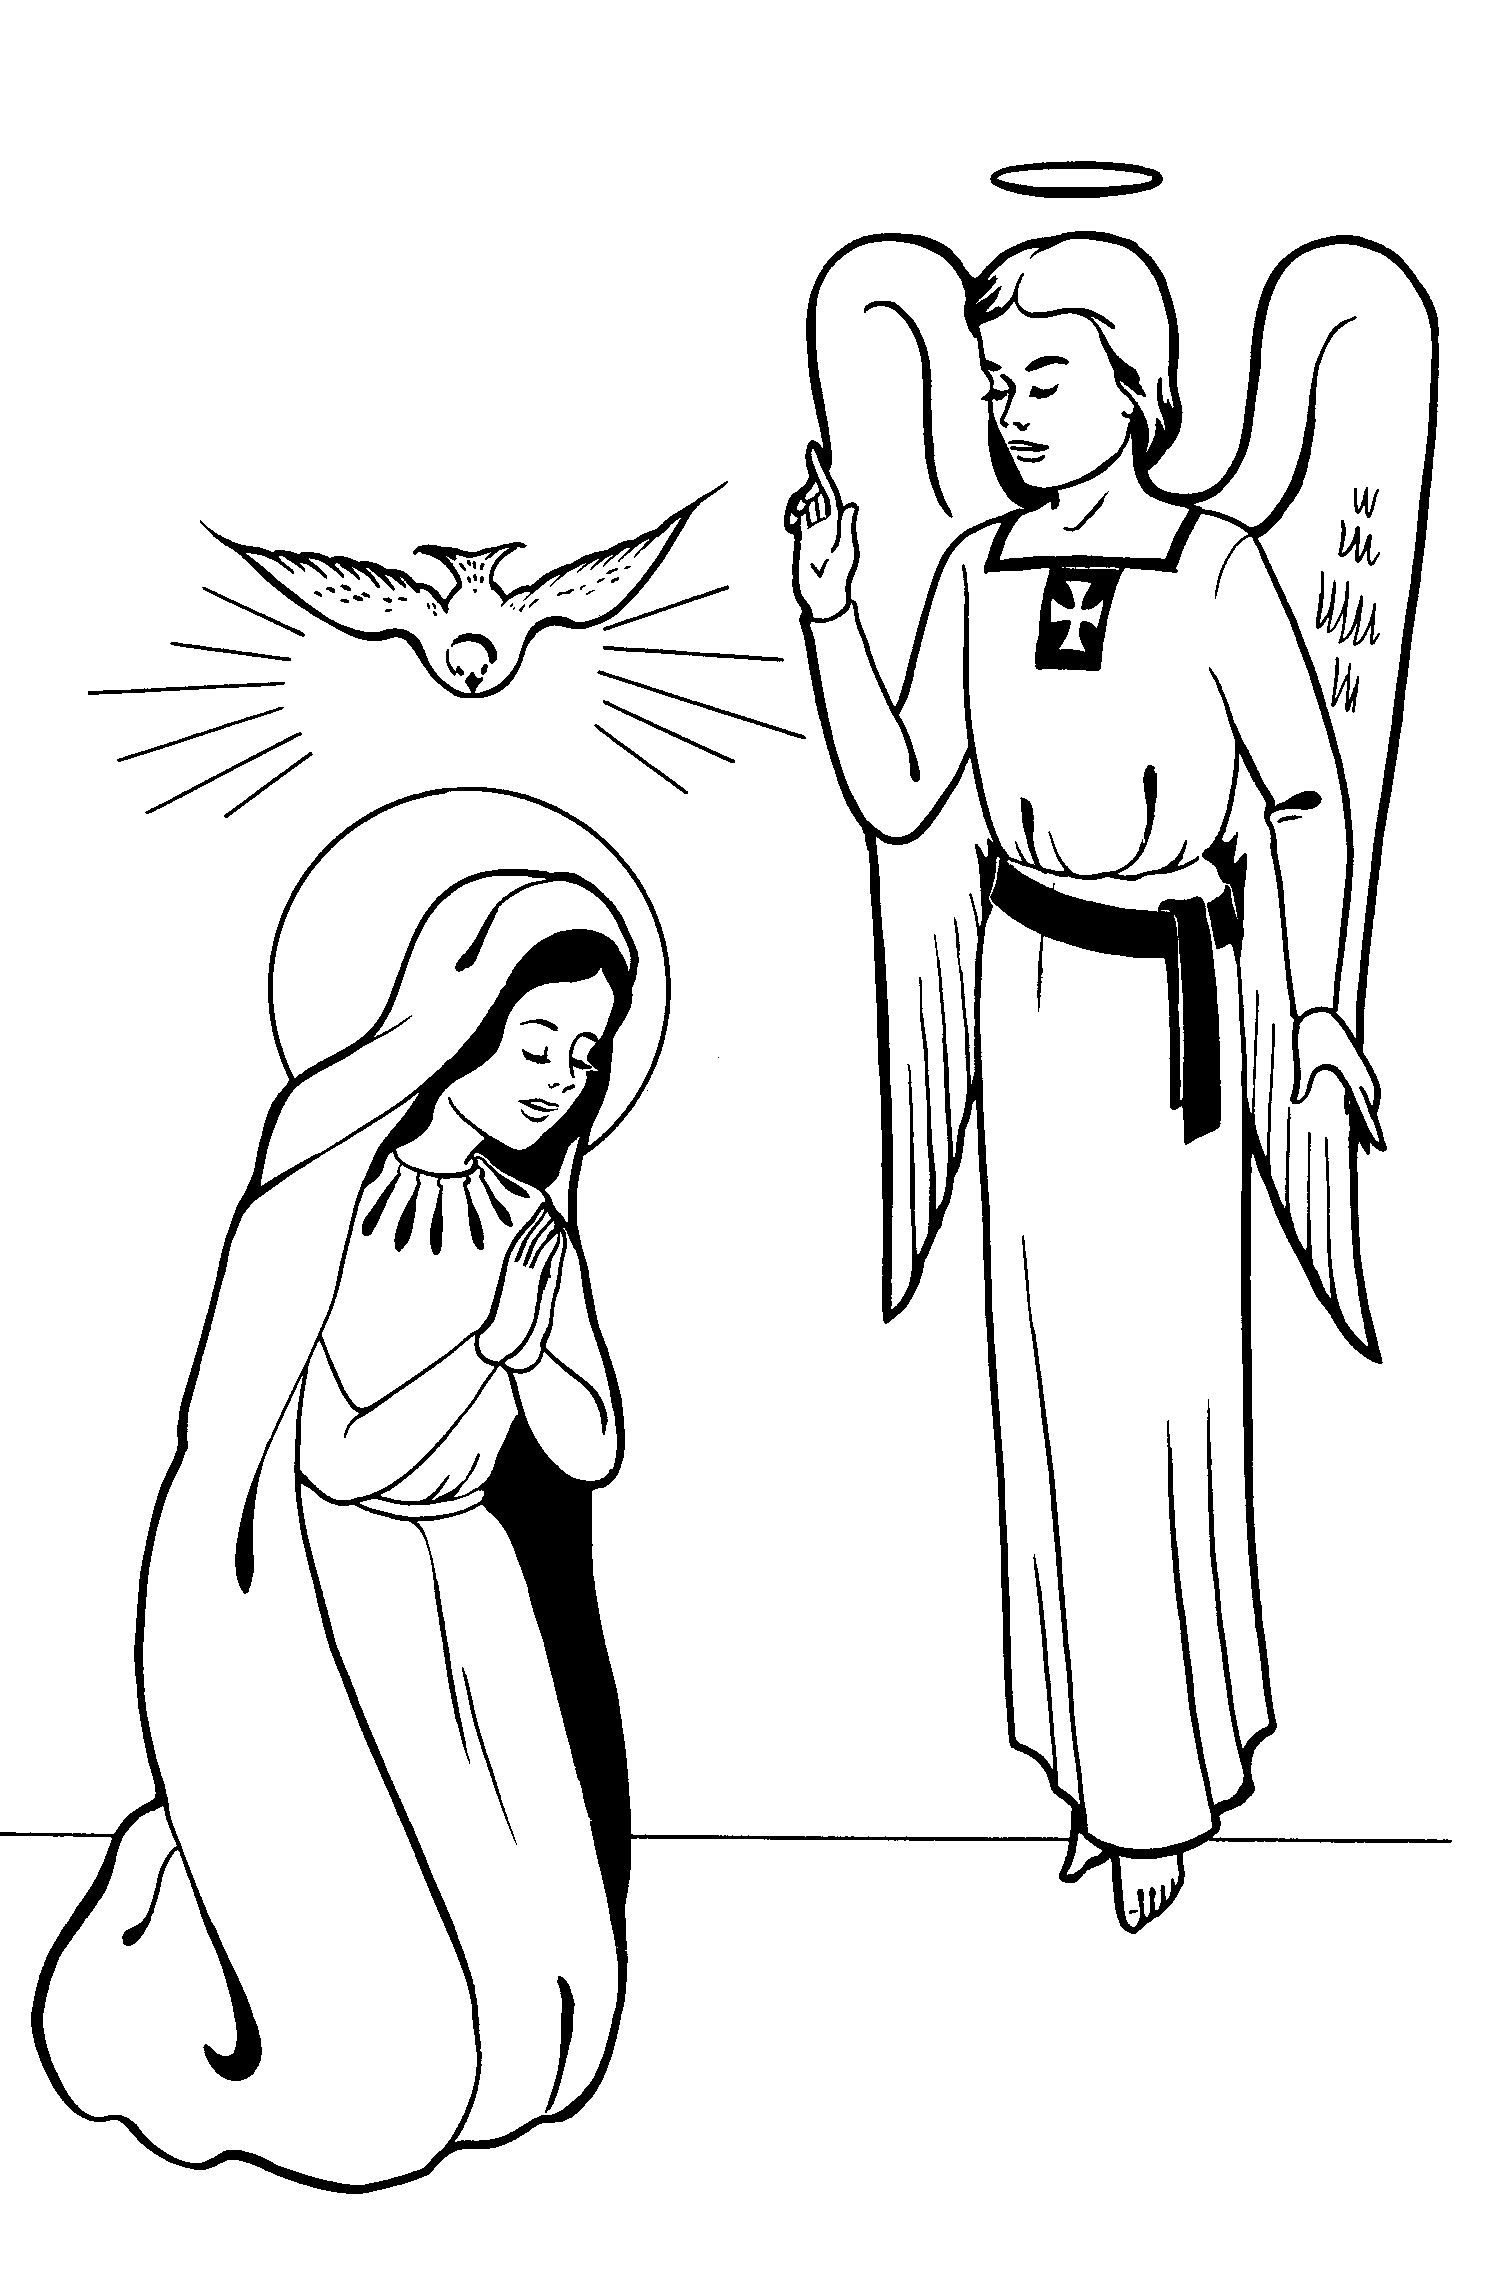 mary coloring pages # 32